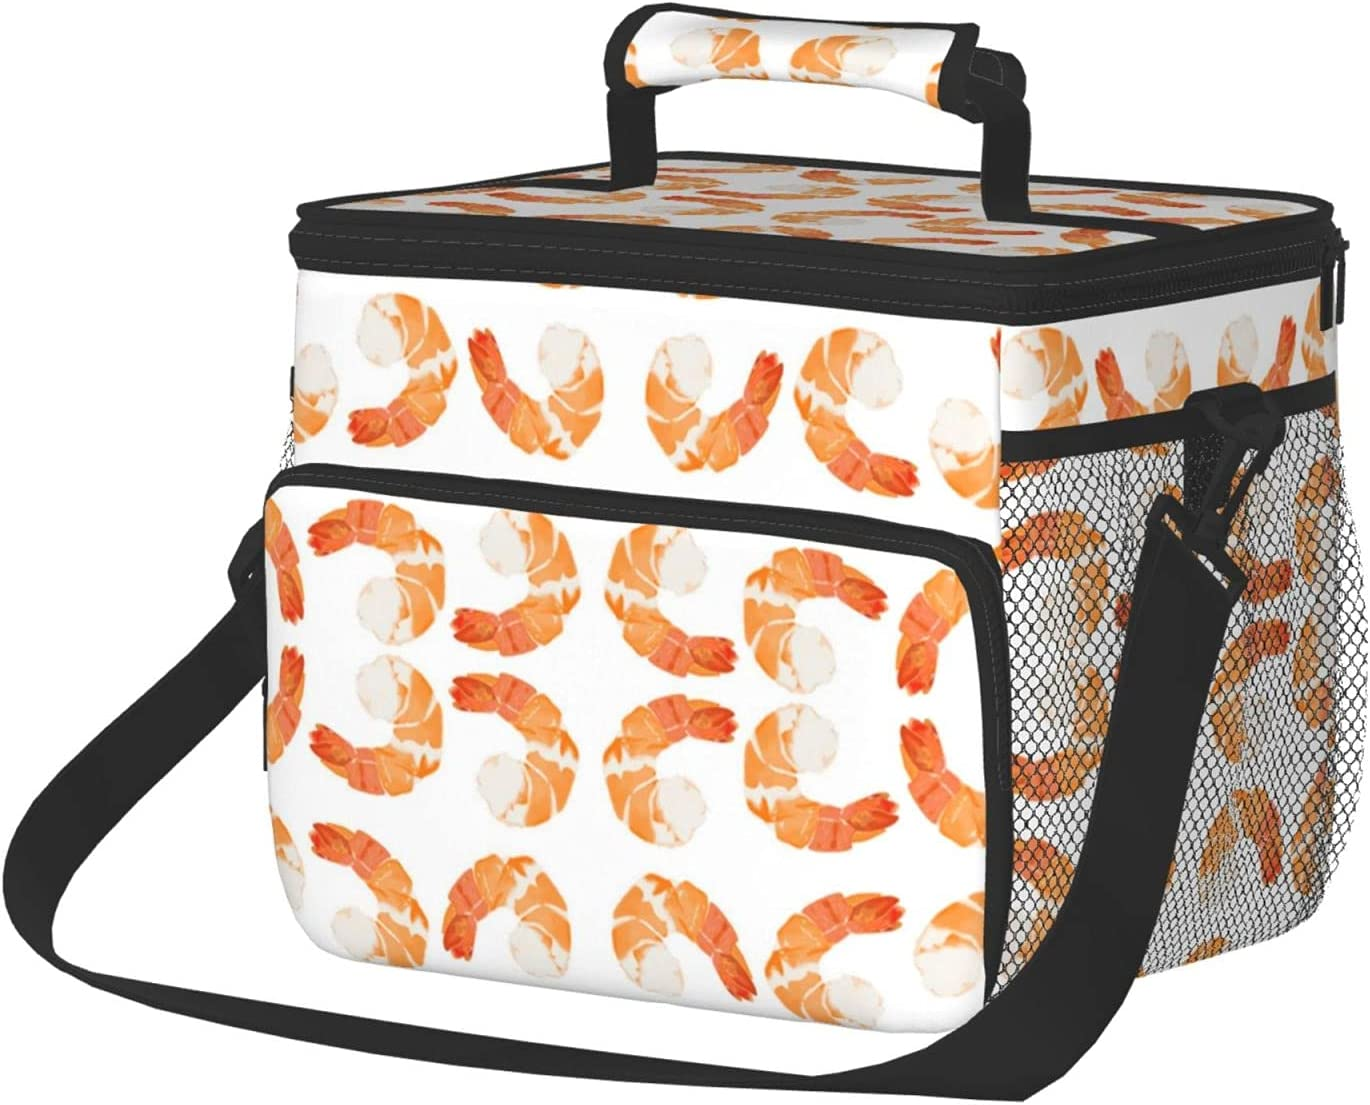 Large Insulated Lunch Box gift For Shrimp Men Women Reusable Excellence